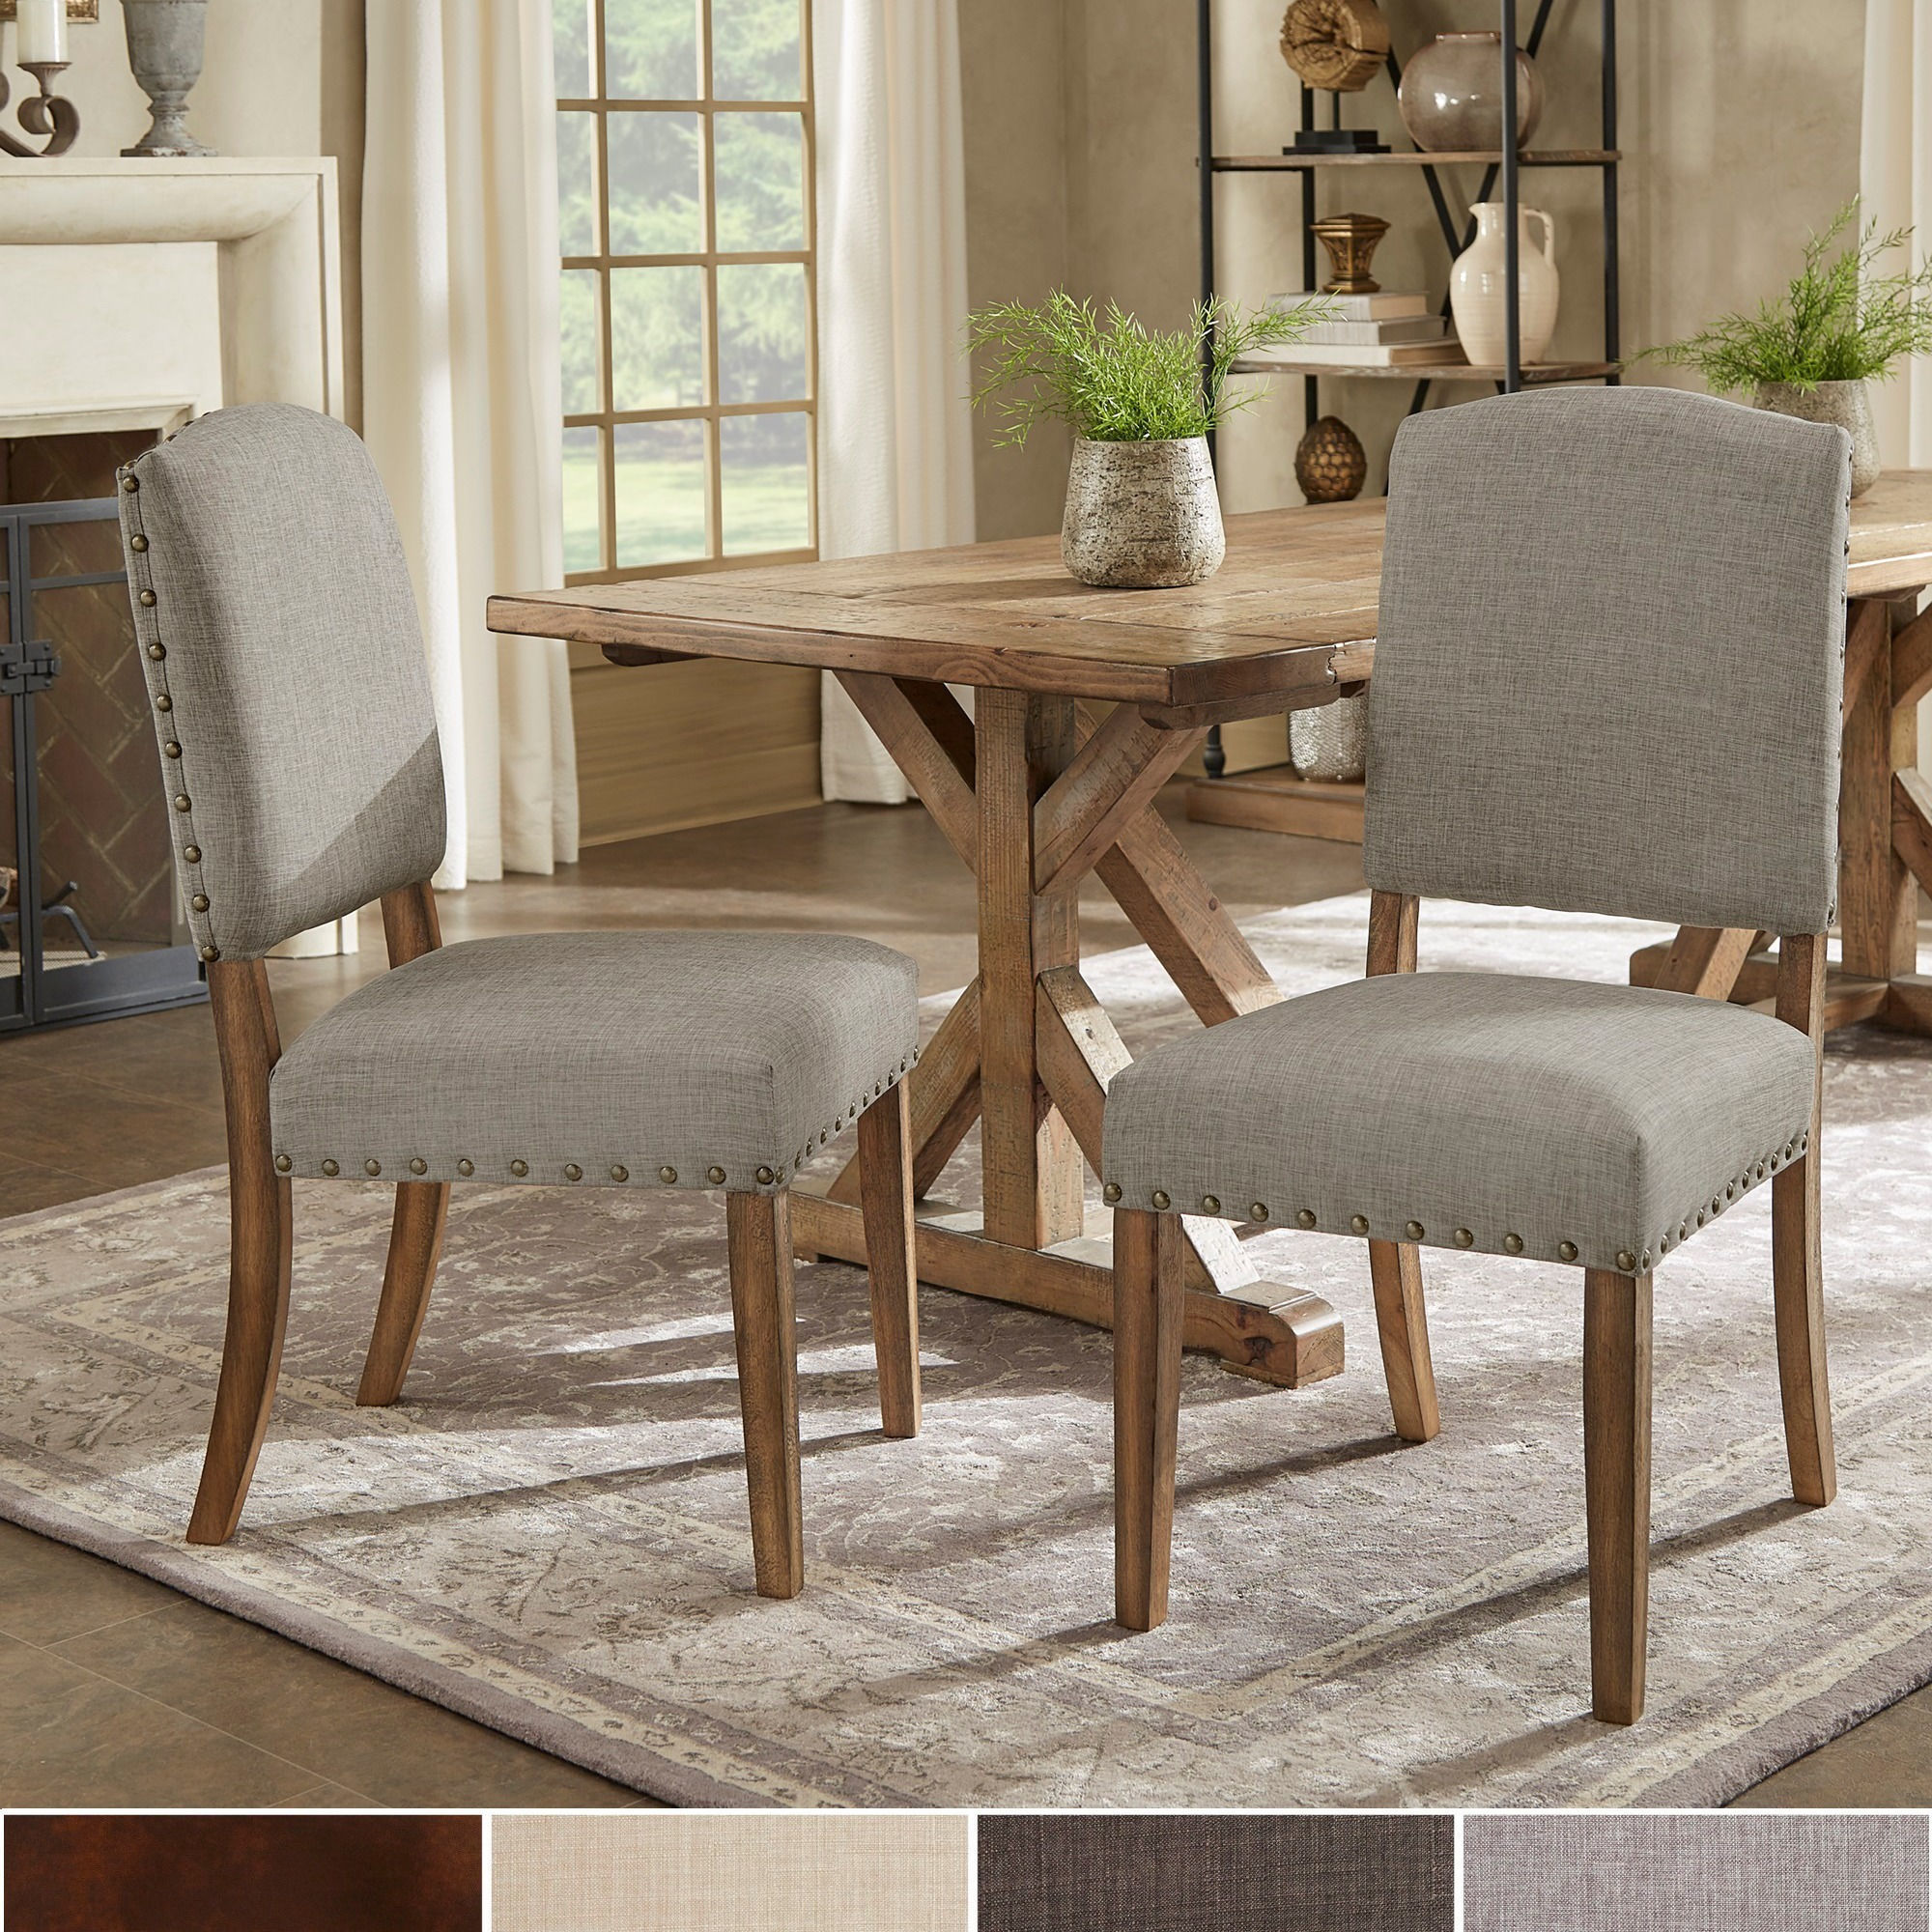 Upholstered Kitchen Chairs 1000 43 Images About Barbanente Kitchen Chairs On Pinterest